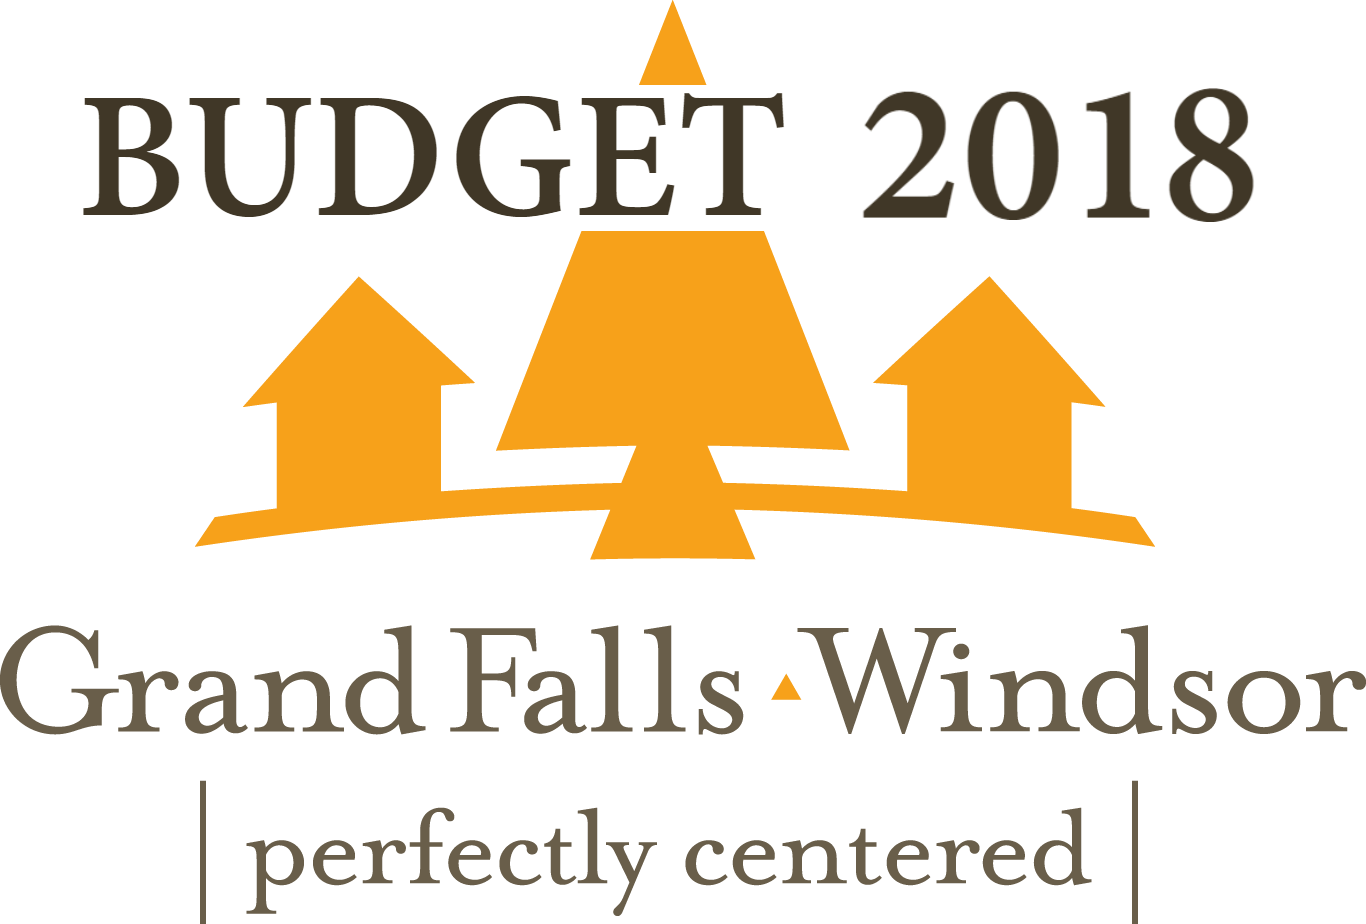 TOWN BUDGET 2018 LOGO PNG